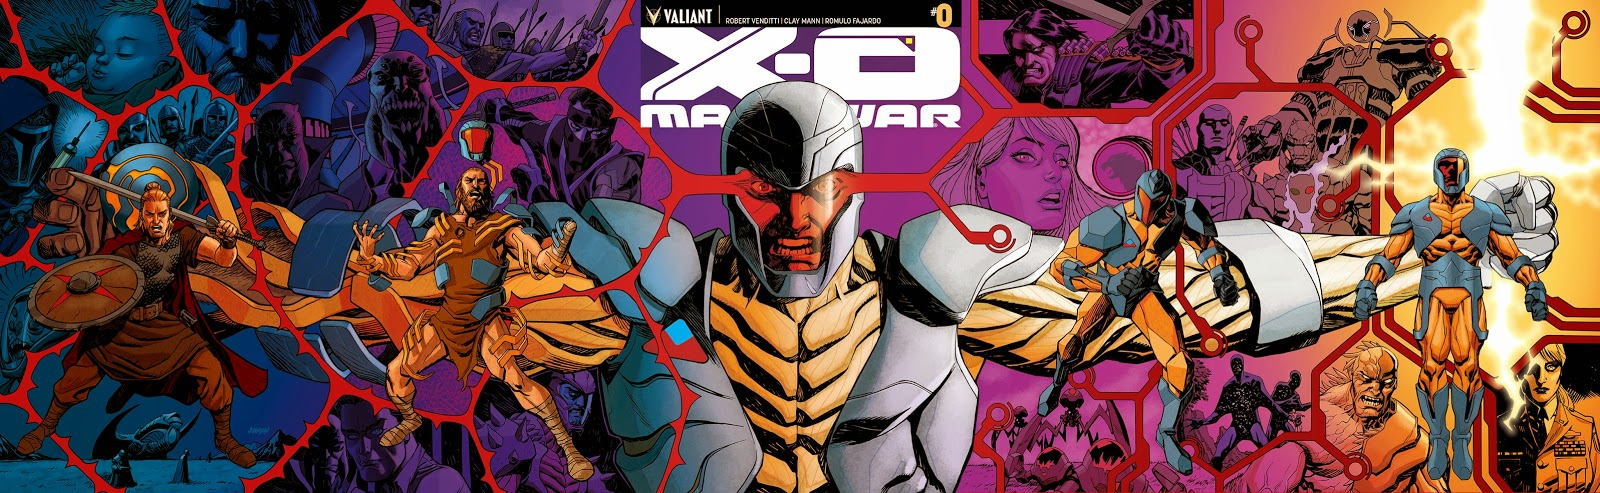 Valients X-O MANOWAR #0 Preview cover art